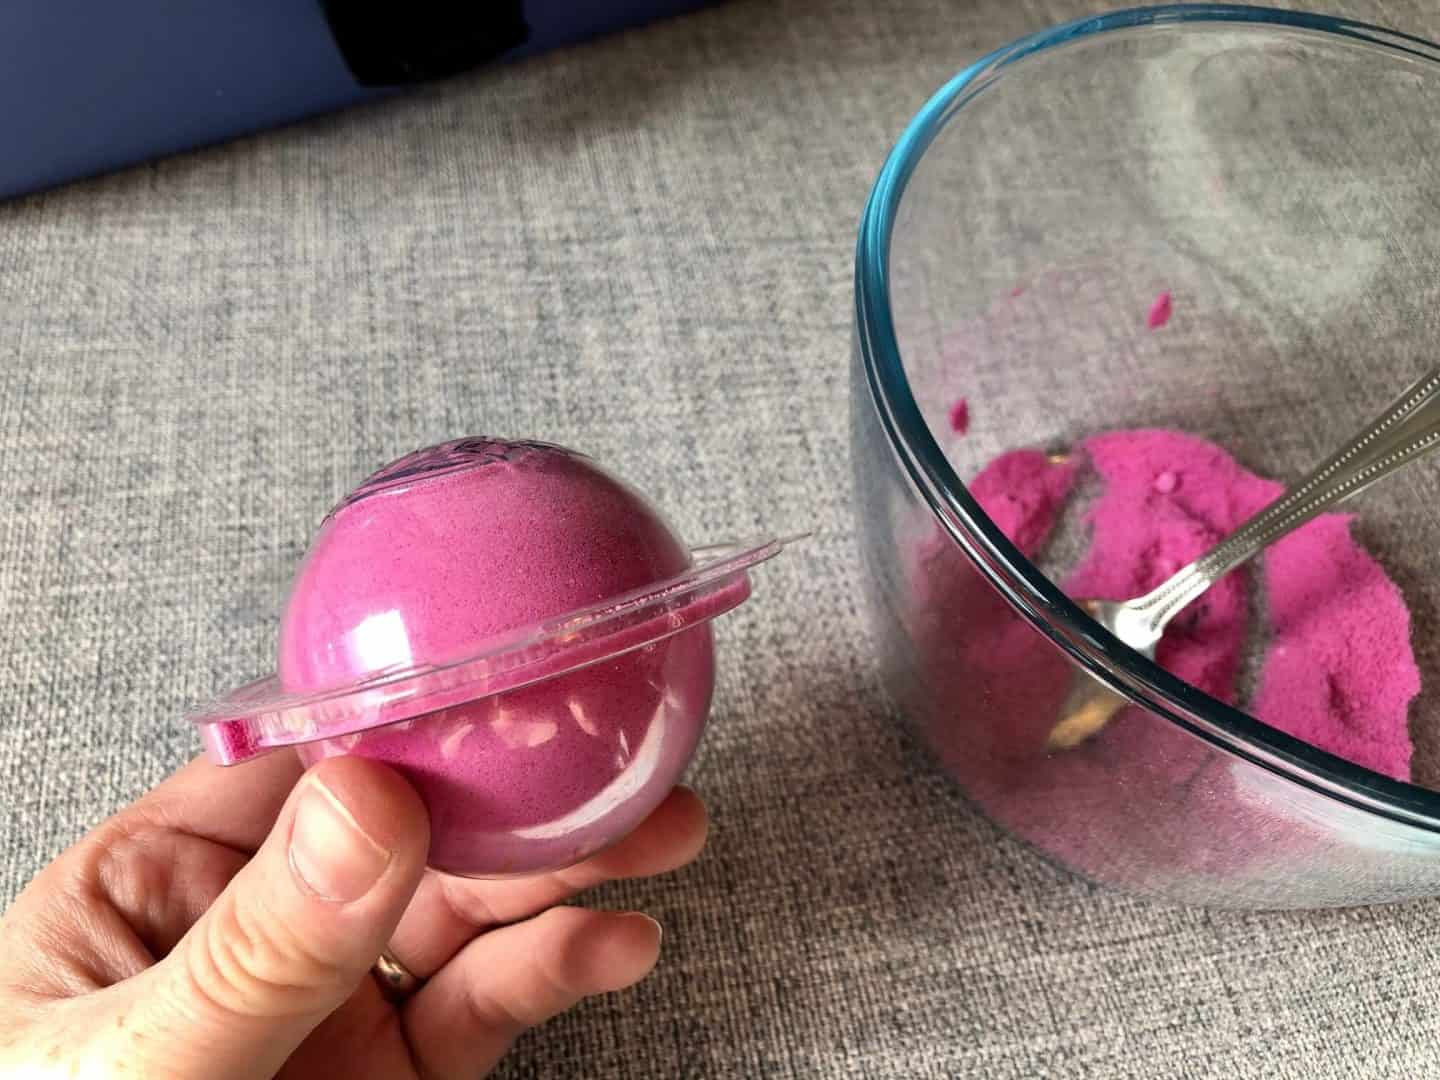 placing the two bath bomb mould halves together